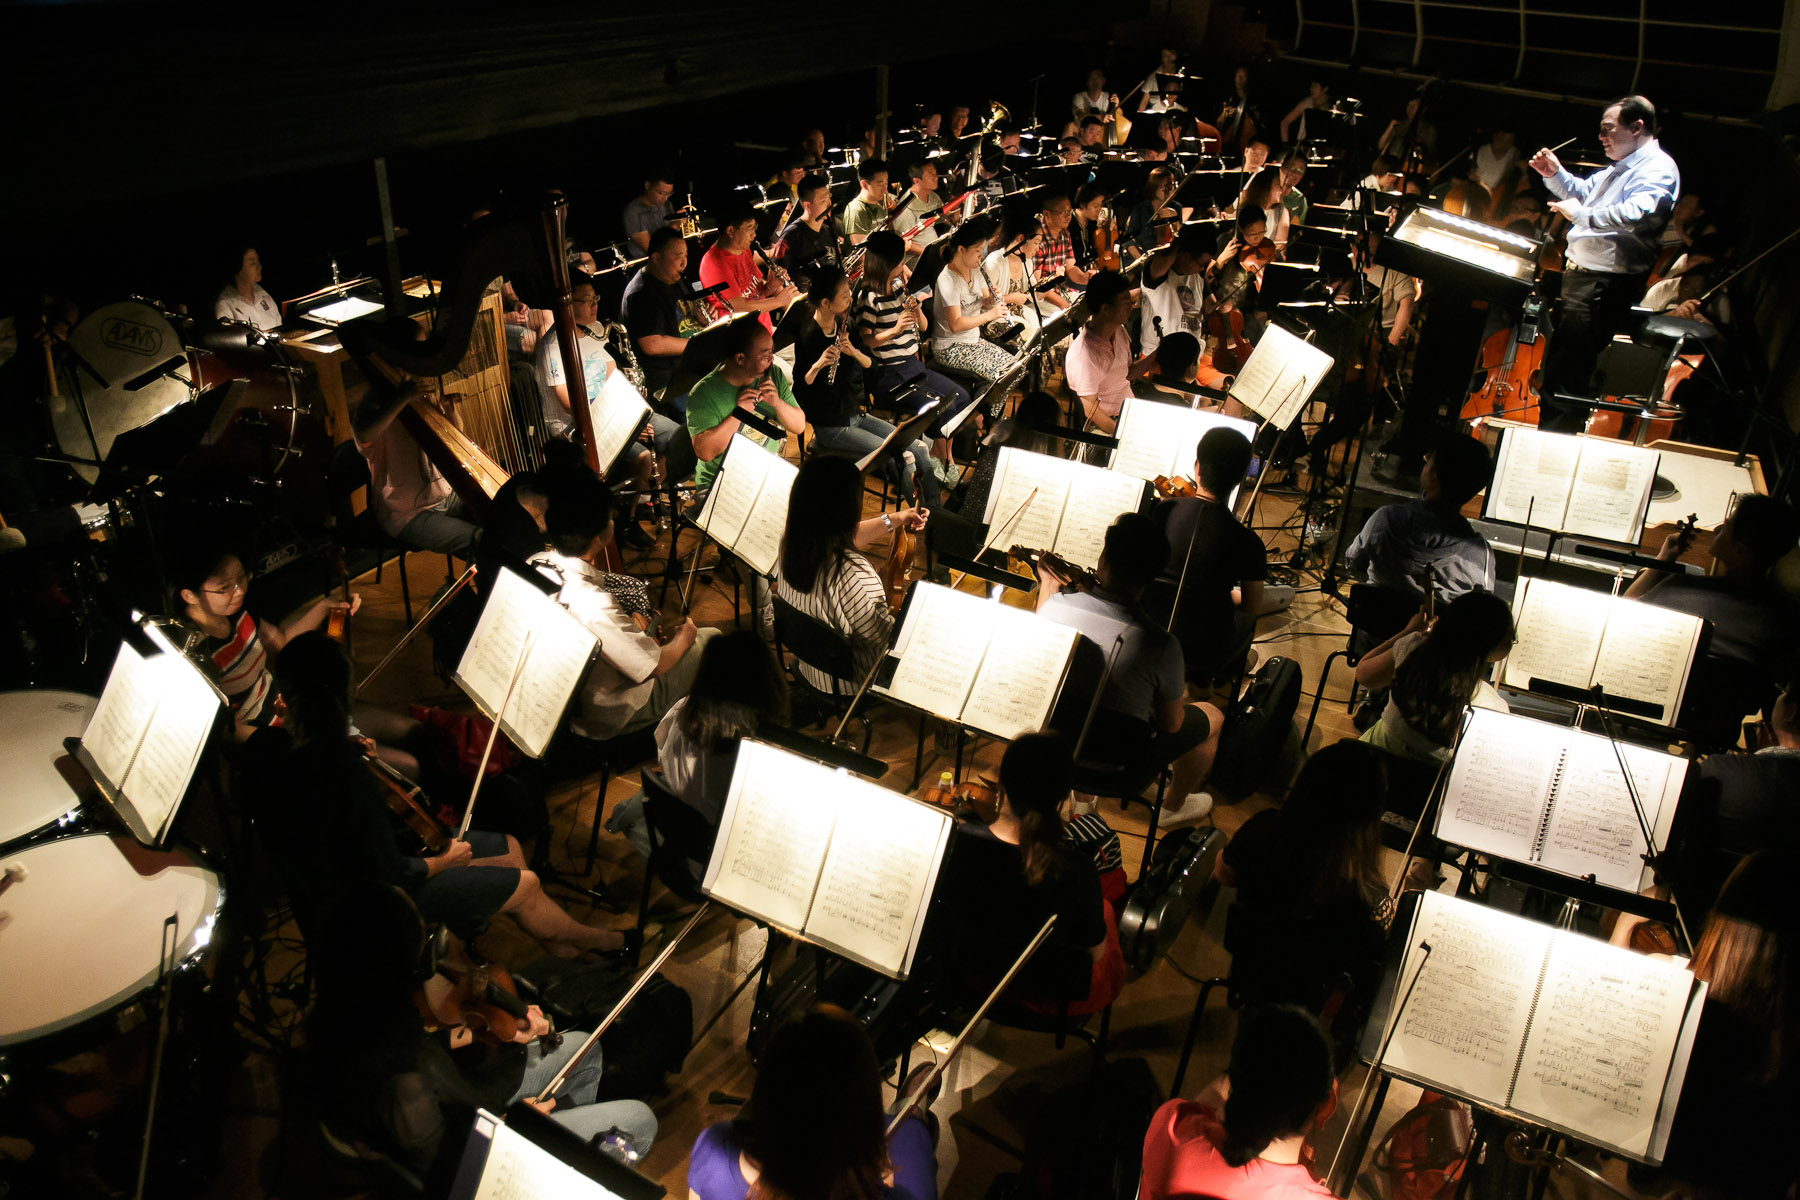 Conductor and artistic director of China National Opera House Yu Feng conducts the orchestra at the first rehearsal of Giacomo Puccini\'s Turandot in Cankarjev dom Cultural & Congress center in Ljubljana, Slovenia, Aug. 31, 2015.